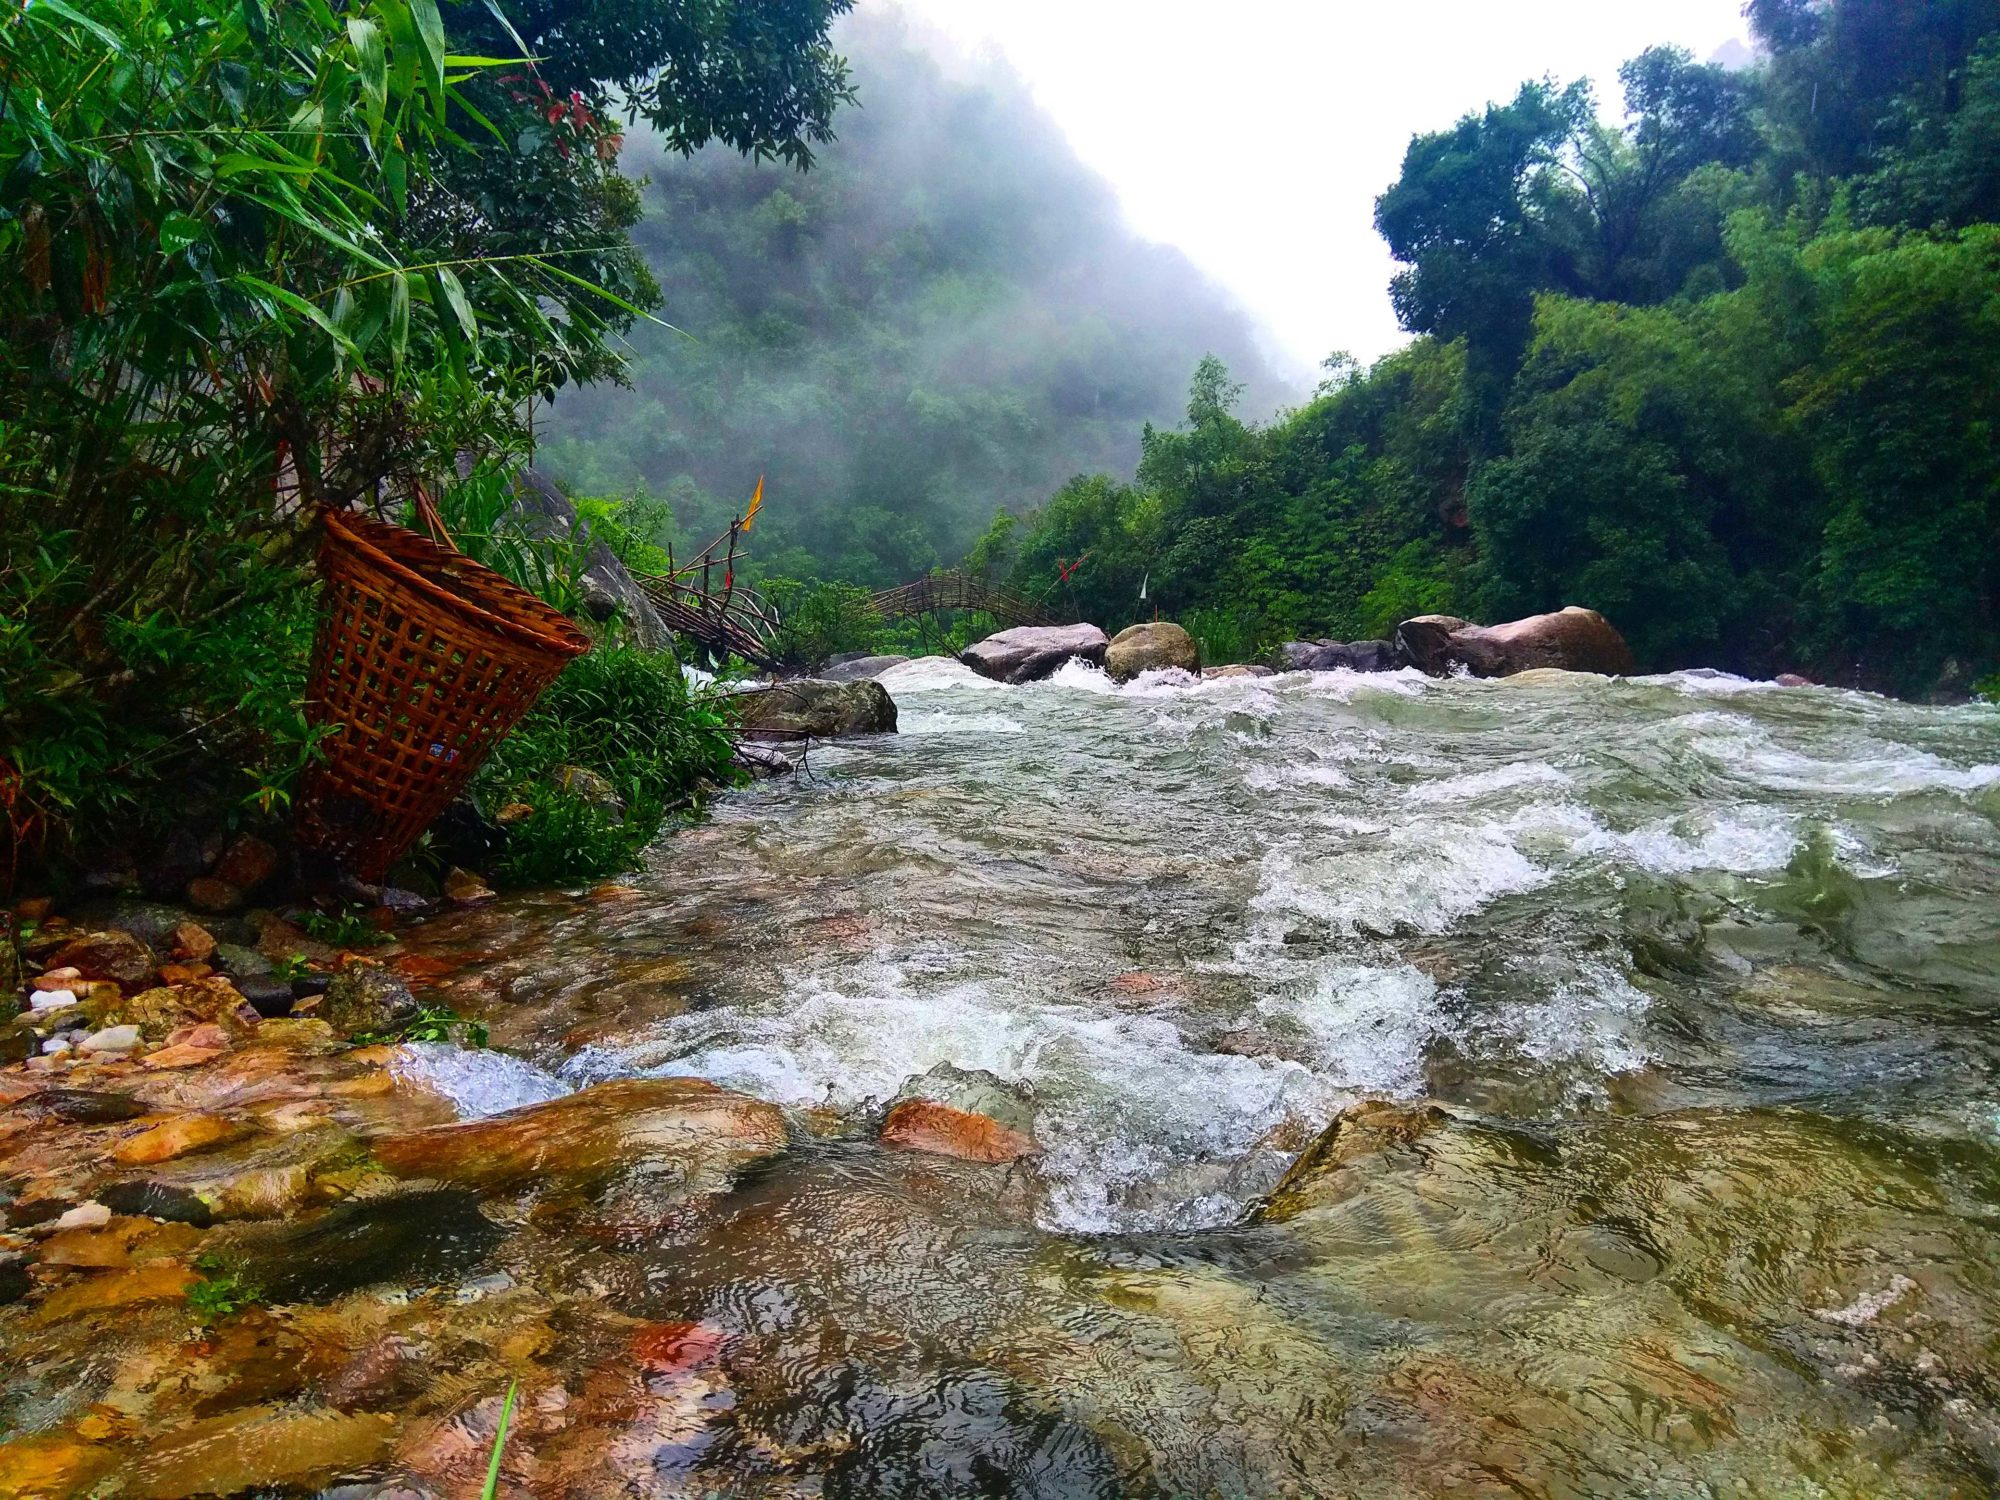 How does northeast India promote eco-tourism?